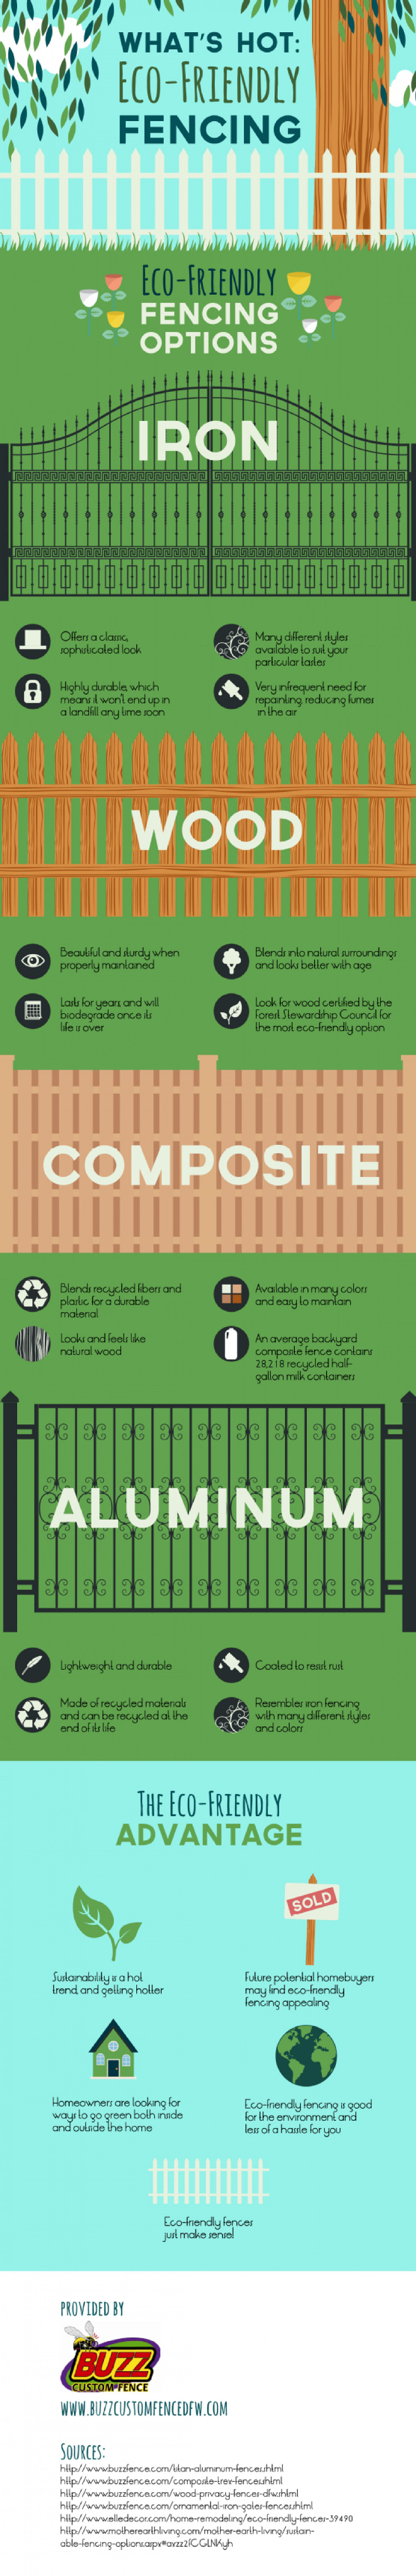 EcoFriendly Fencing Choices